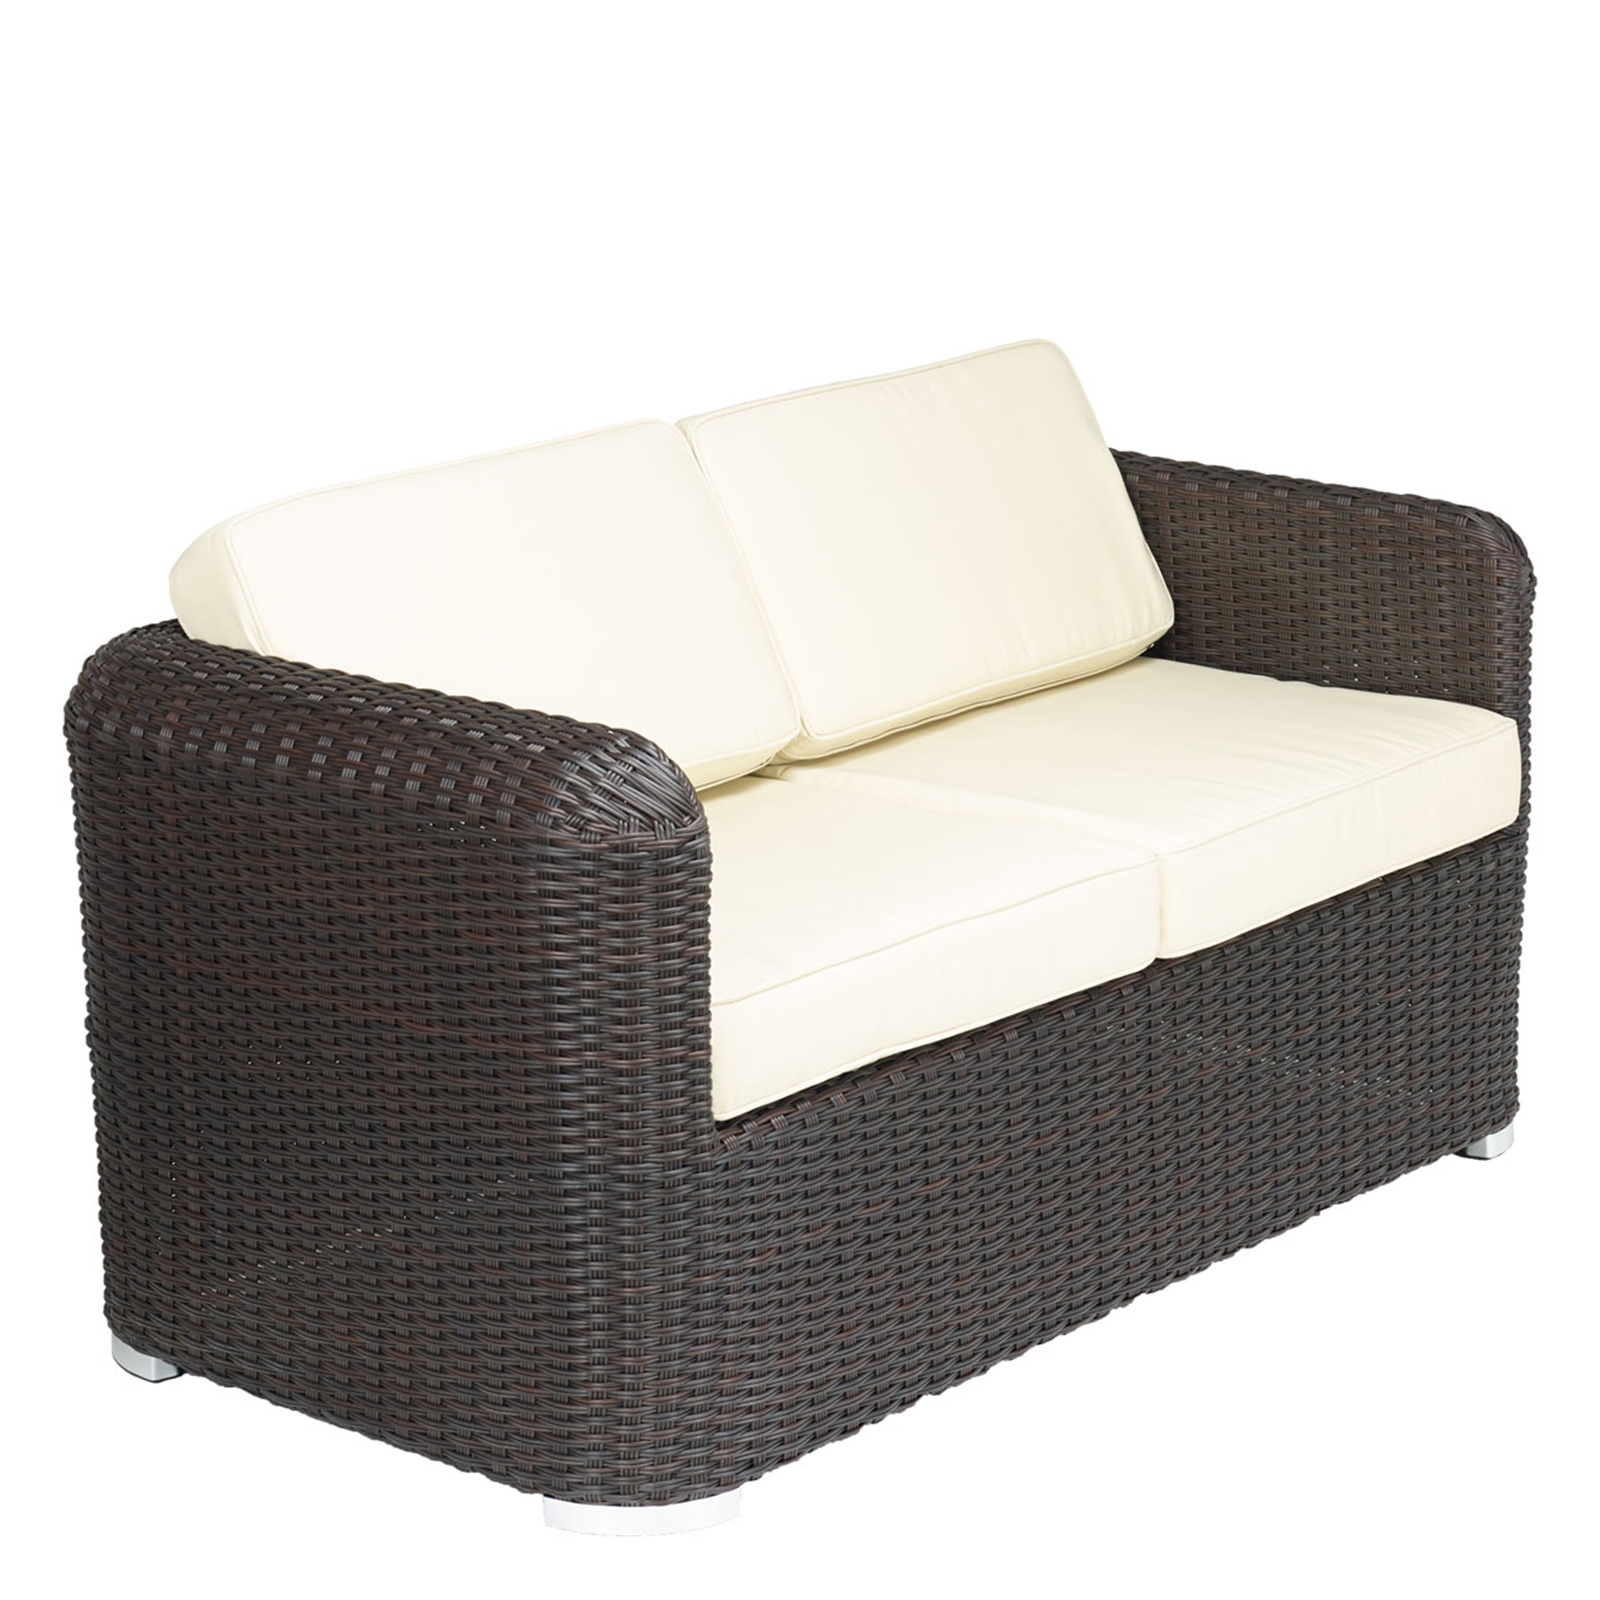 Florida Seating AB LOVESEAT sofa seating, outdoor